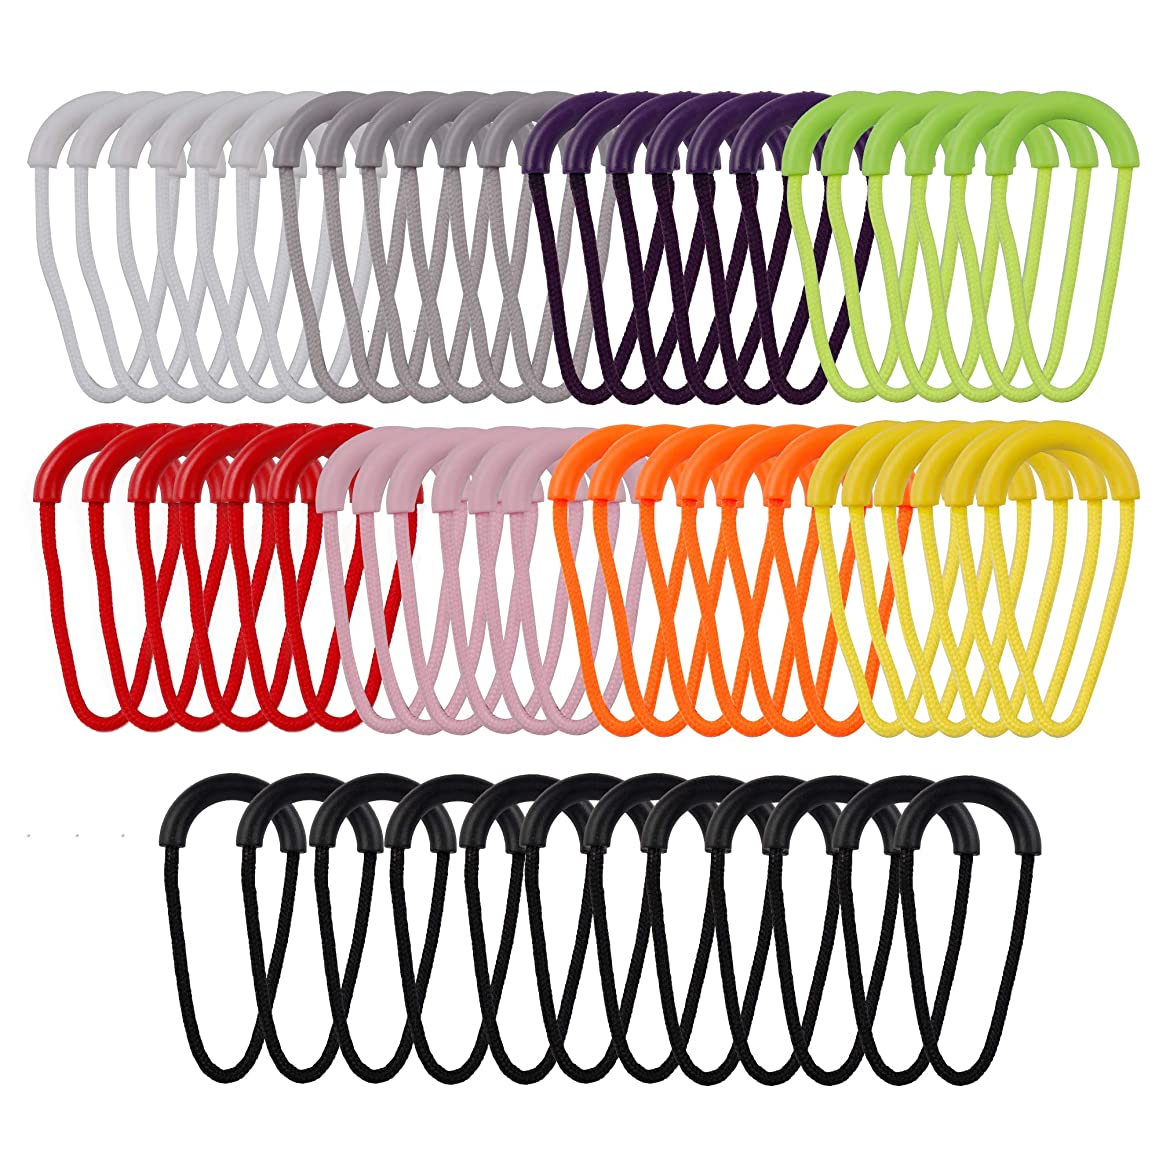 HUIHUIBAO 60 Pieces Heavy Duty U Shape Nylon Zipper Pulls Cord Extension Replacement for Backpacks, Jackets, Traveling Cases, Luggage, Purses, Handbags, 9 Colors